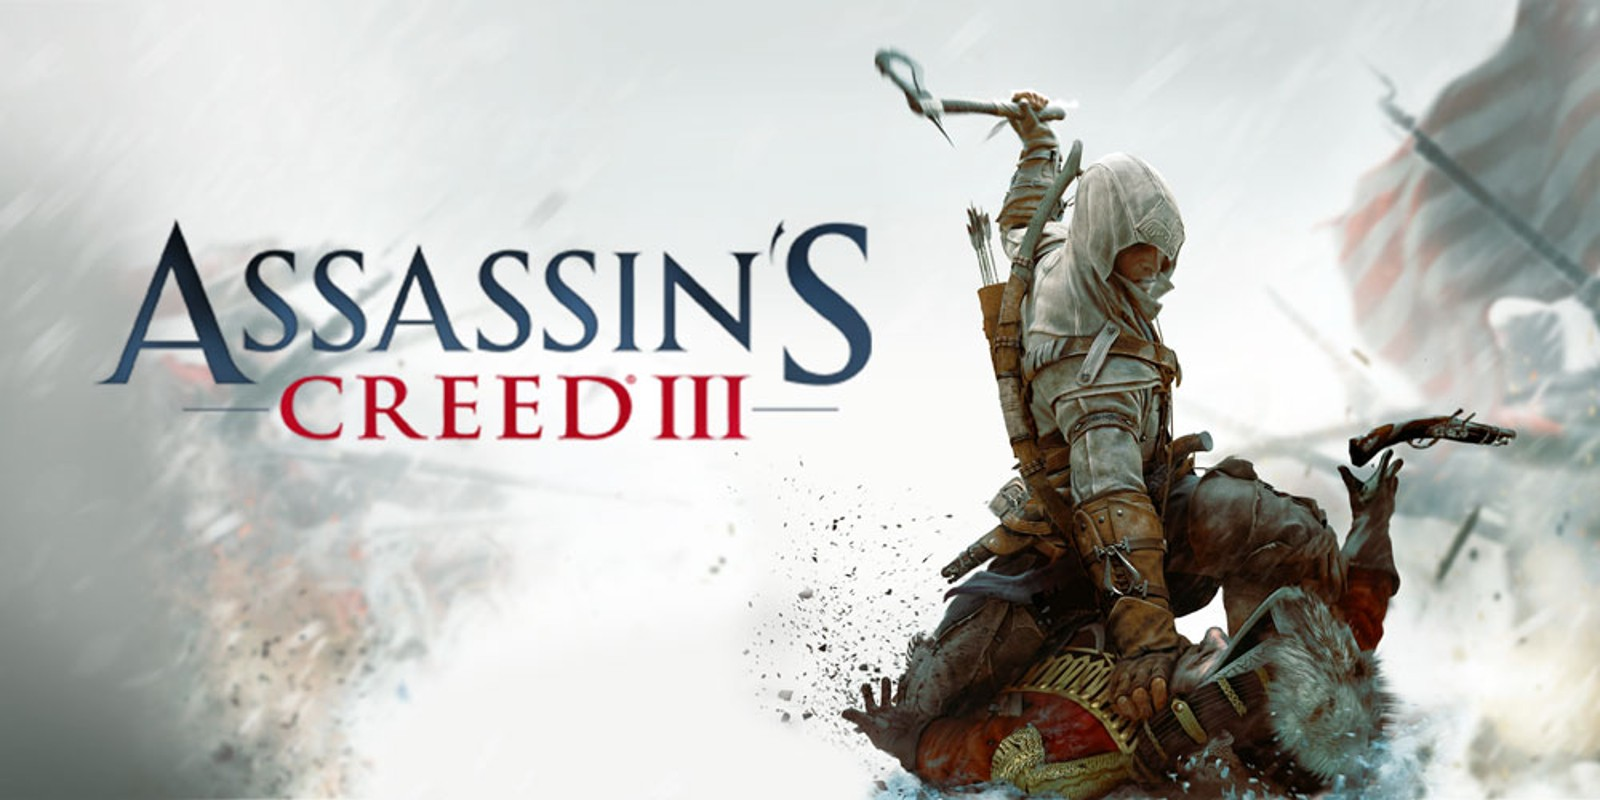 Assassin's Creed III | Wii U | Jeux | Nintendo